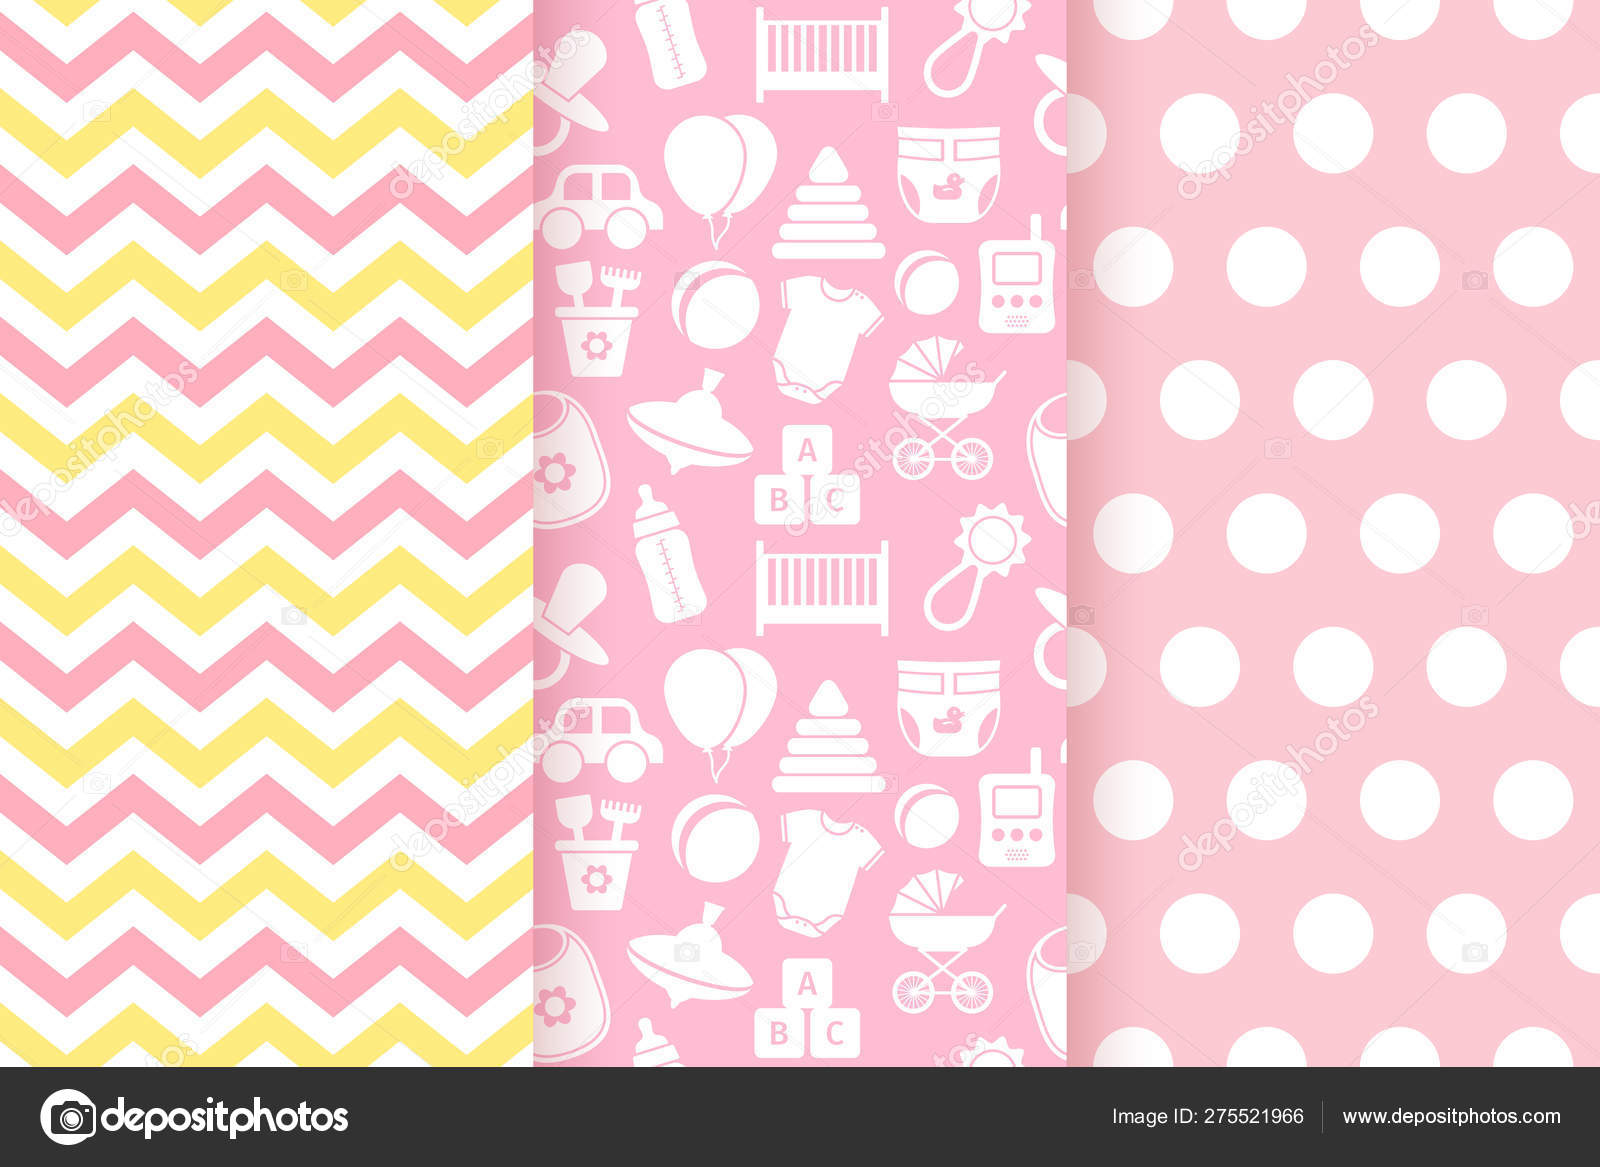 Baby Shower Seamless Patterns For Baby Girl Vector Illustration Stock Vector C Maradaisy 275521966